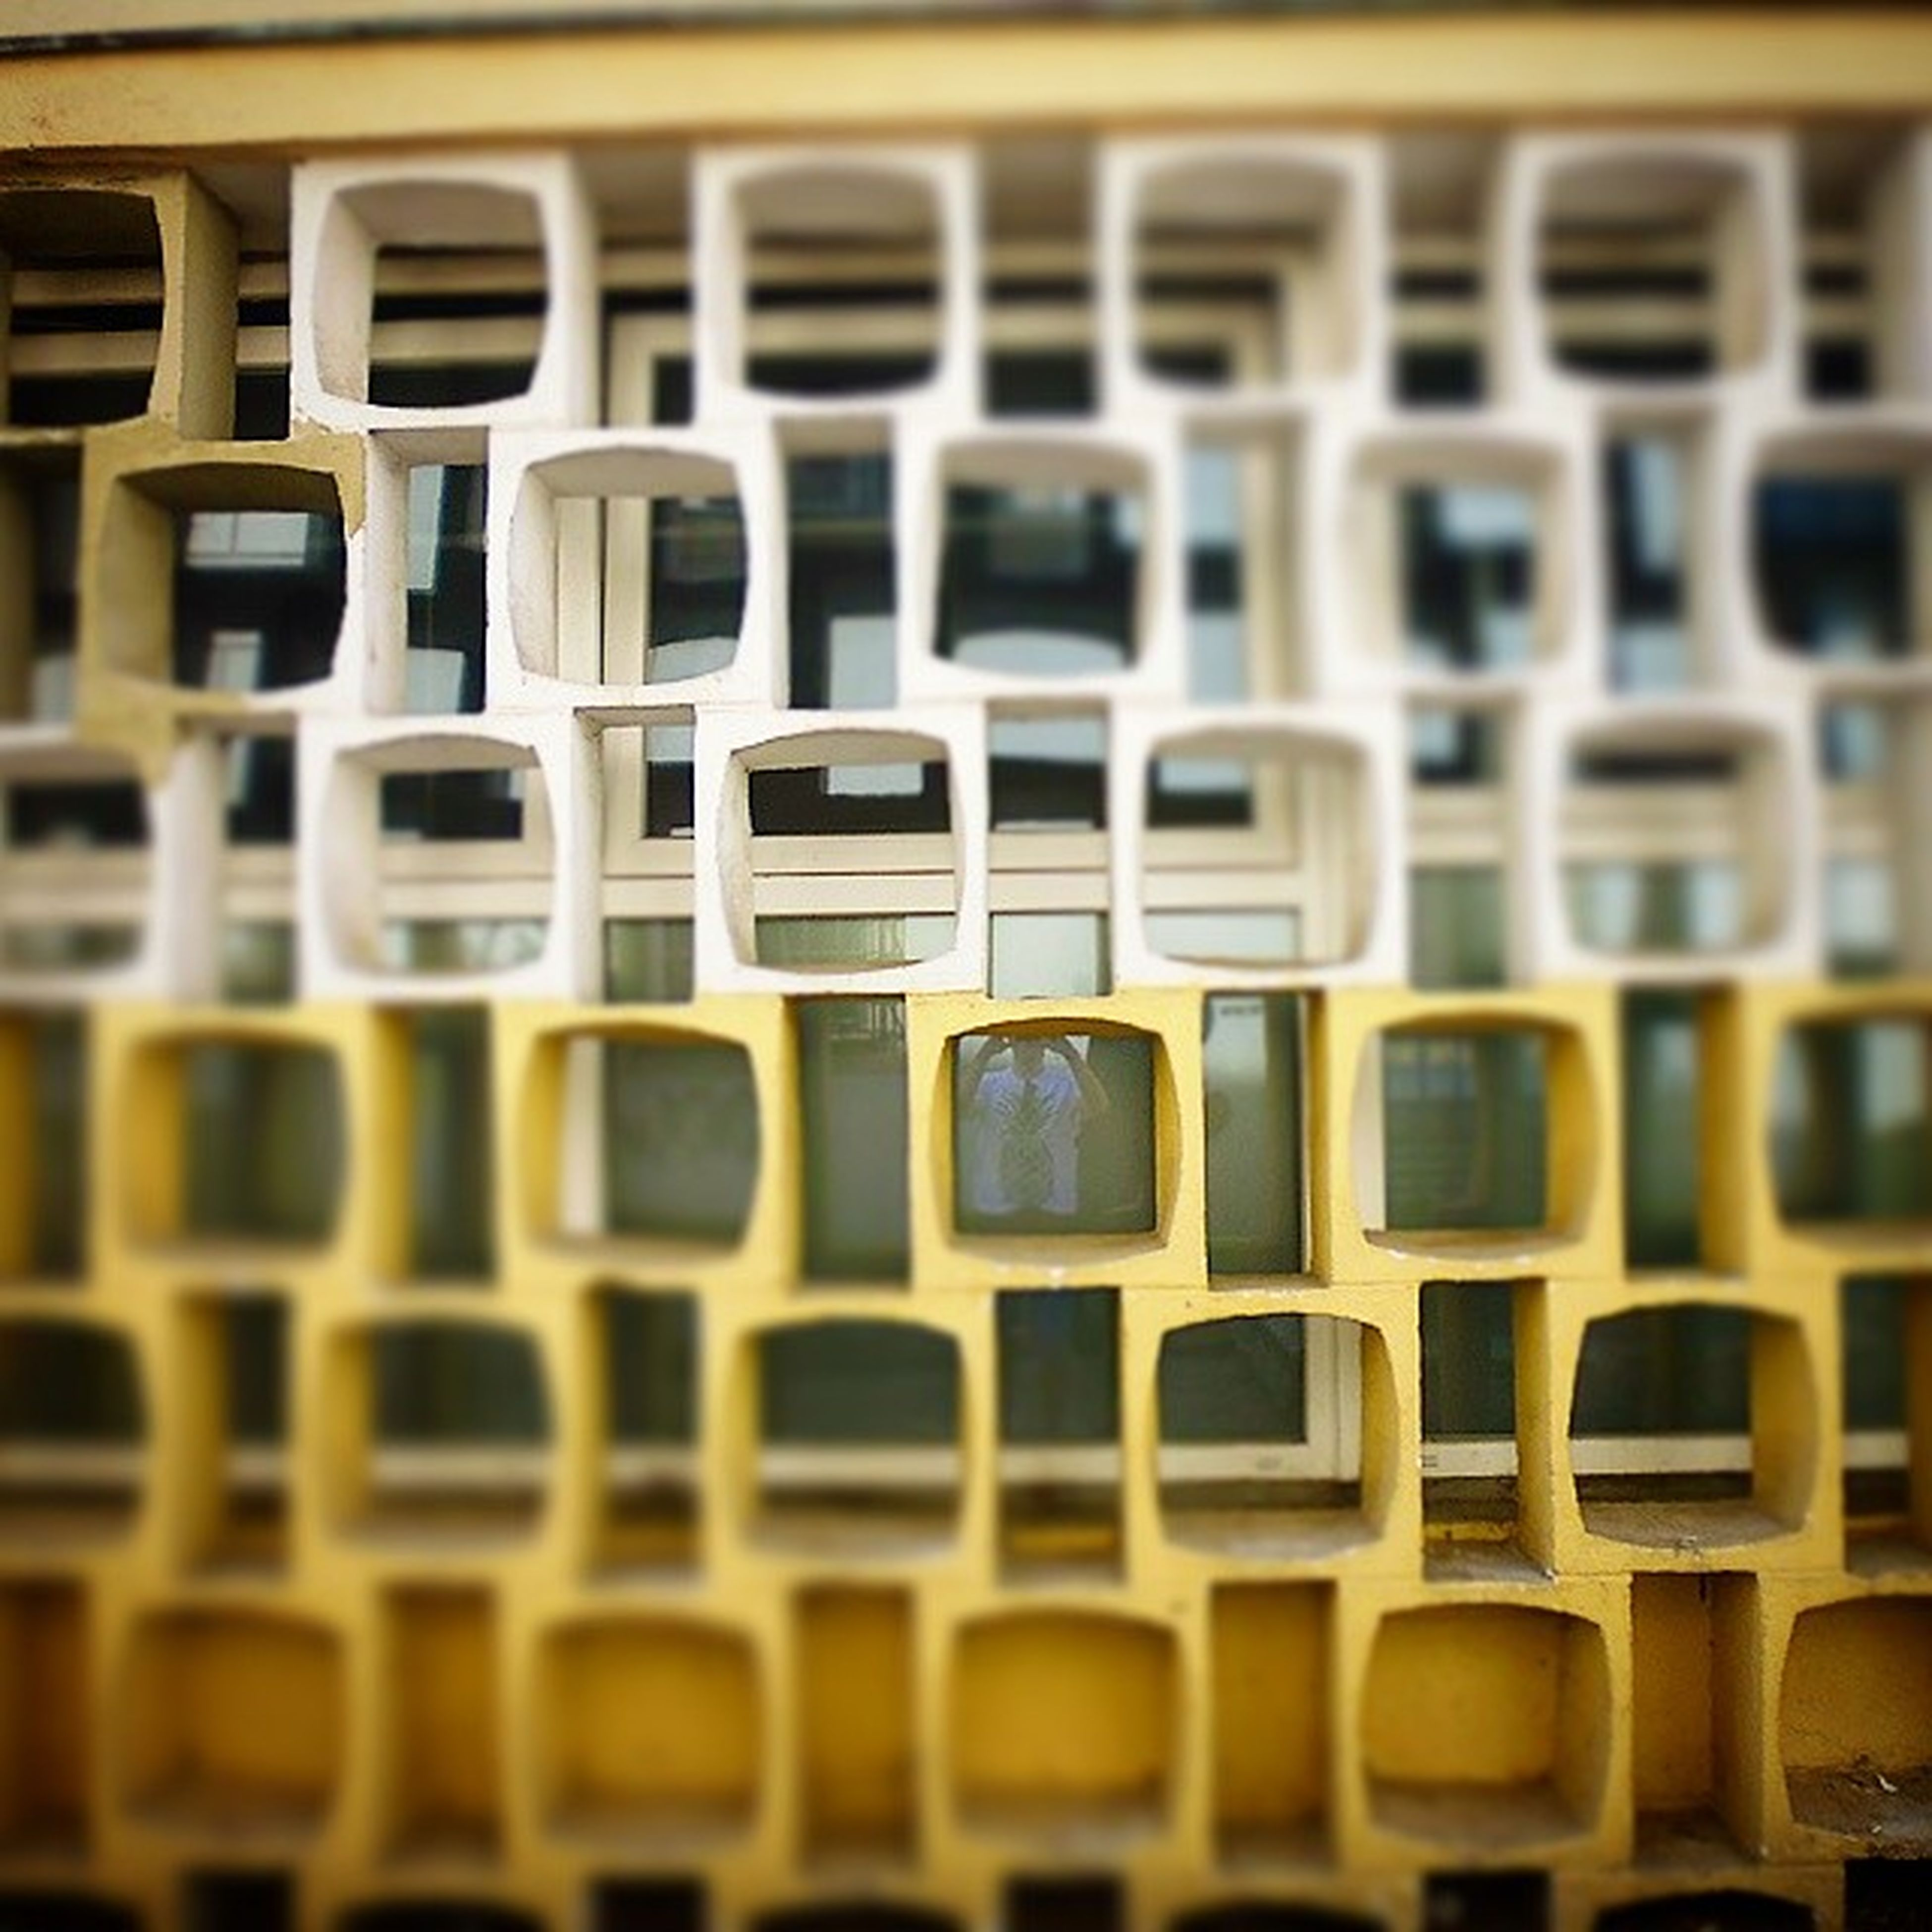 in a row, repetition, full frame, indoors, backgrounds, side by side, large group of objects, order, abundance, arrangement, pattern, no people, close-up, variation, selective focus, window, day, yellow, still life, illuminated